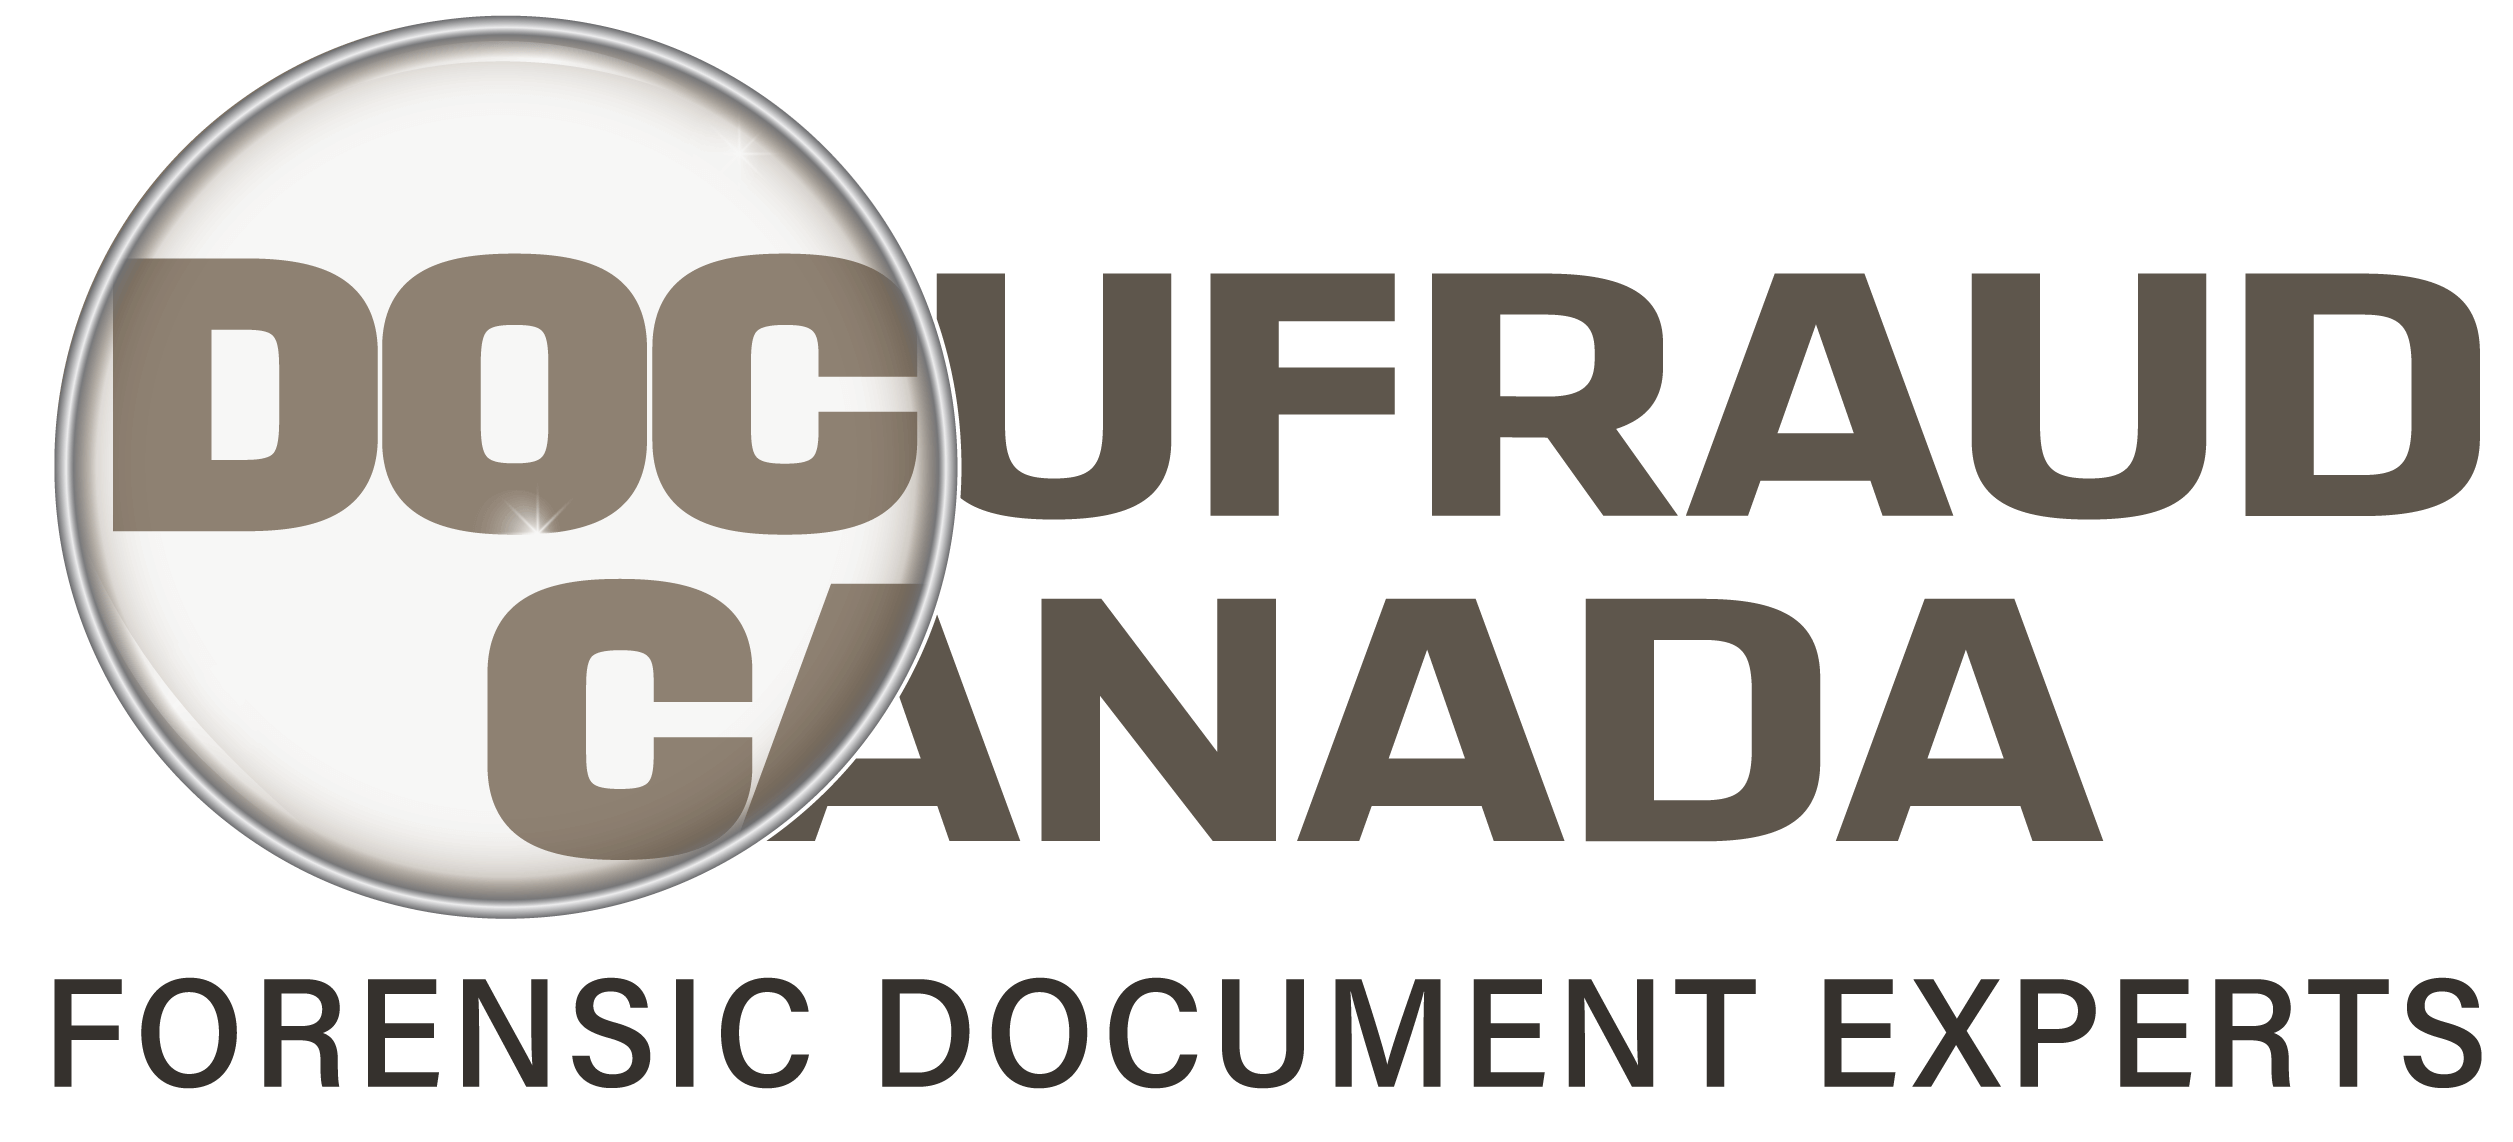 Docufraud Canada